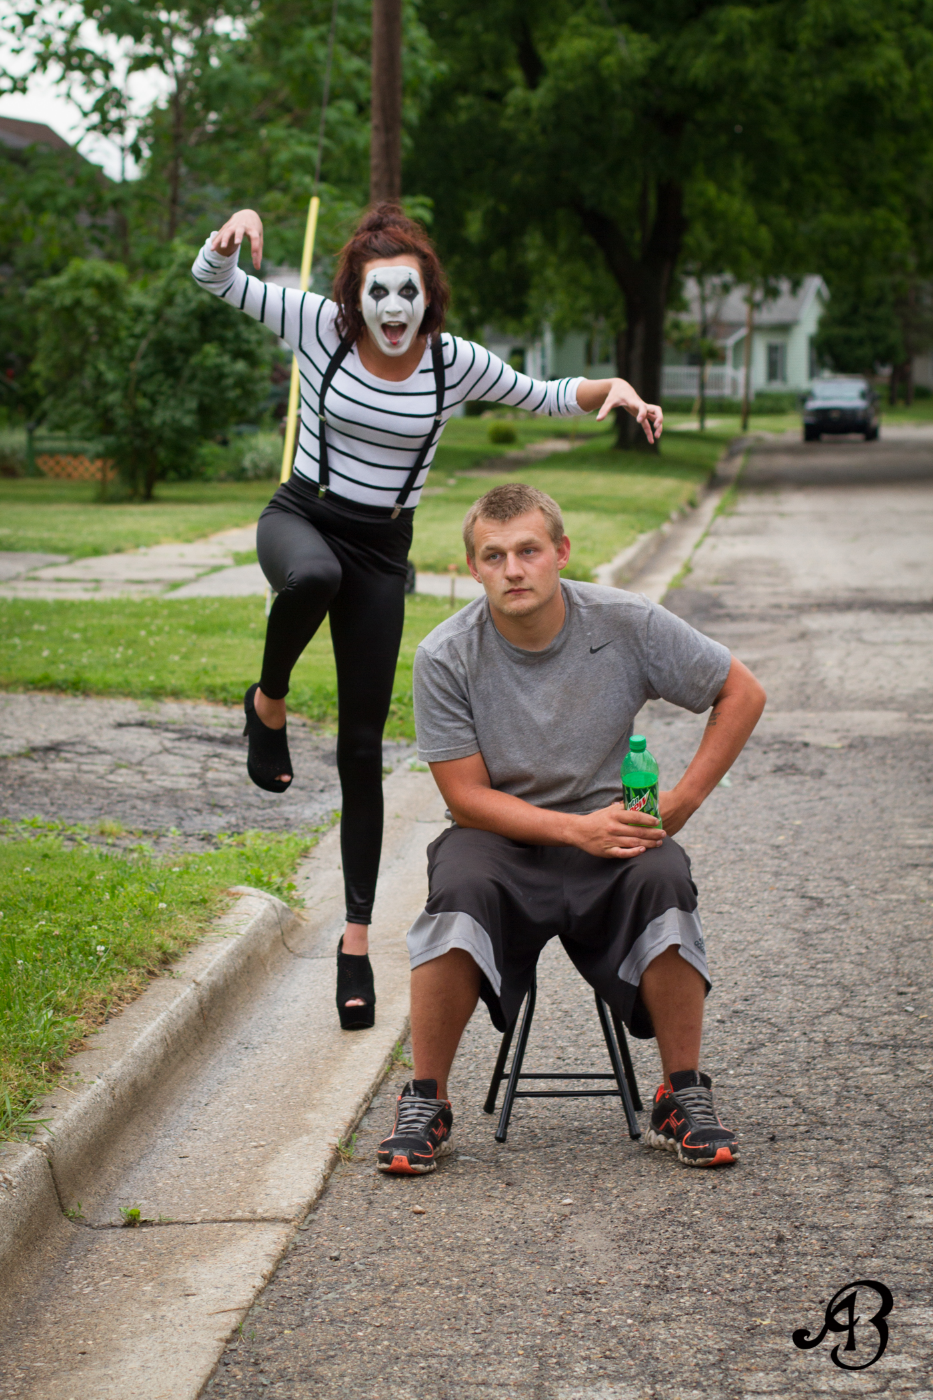 Taryn the mischievous mime sneaks up on her very bored friend, while a cop car creeps closer in the background to investigate what shenanigans we were up to.  Model: Taryn Alyssa    |    Hair & Makeup: Andrea Menke    |    Video: Krissy Booth    |    Photographer: Alyssia Booth